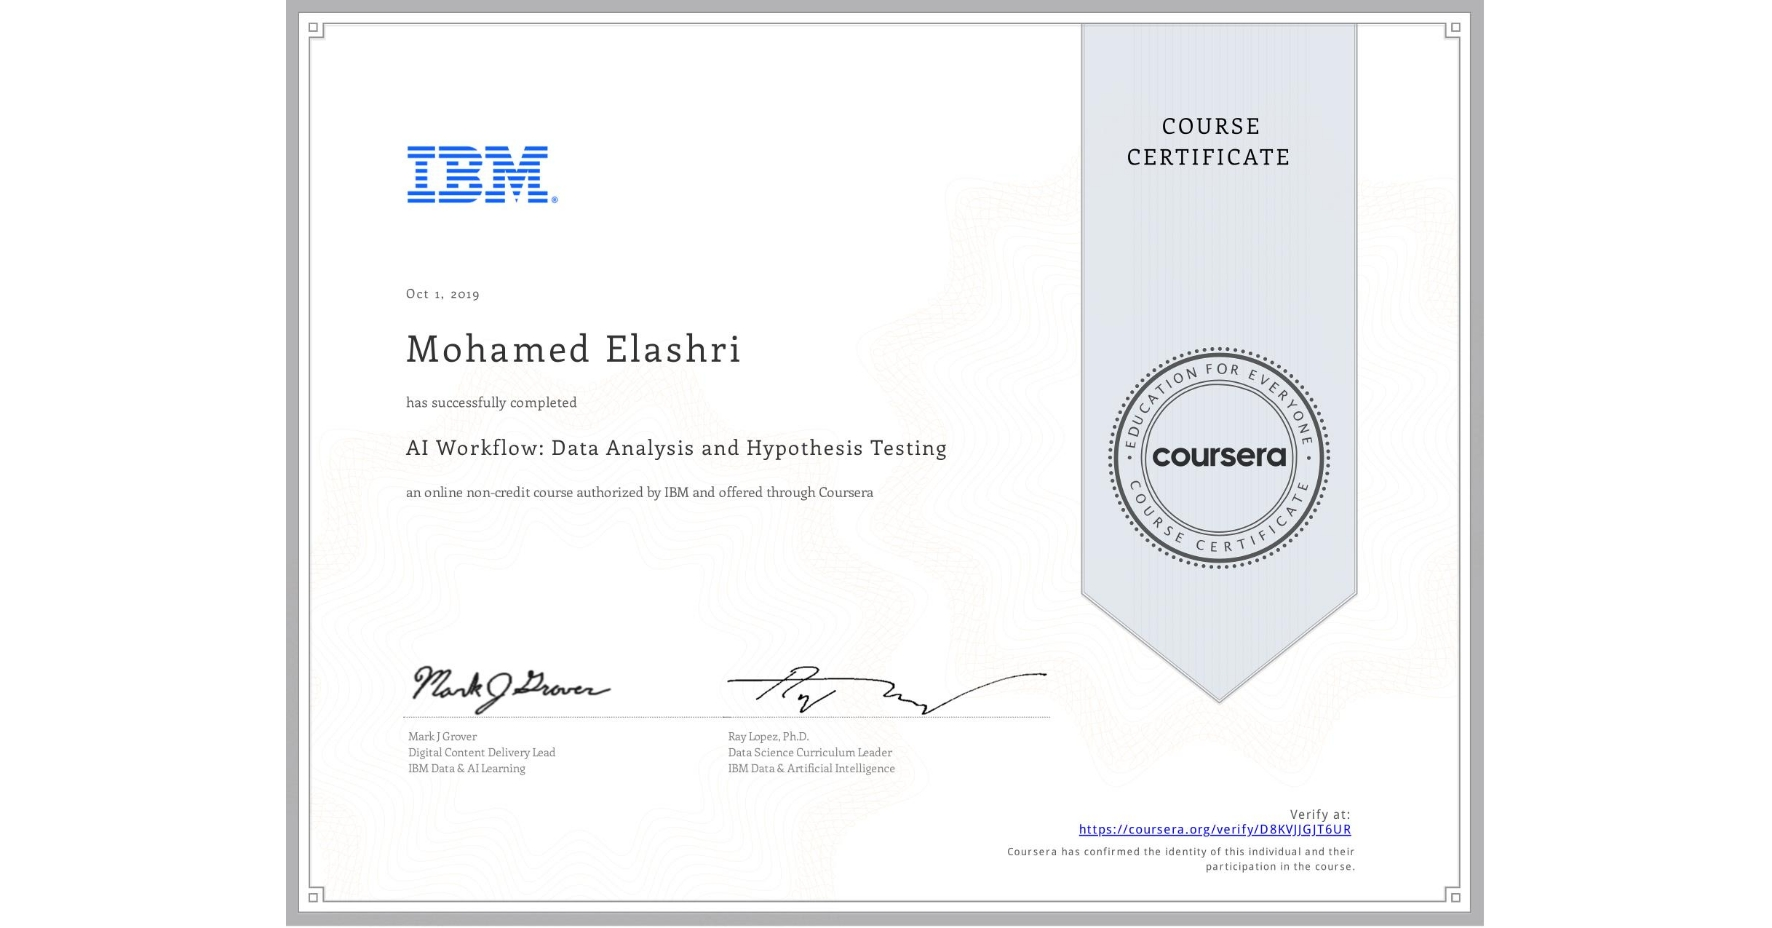 View certificate for Mohamed Elashri, AI Workflow: Data Analysis and Hypothesis Testing, an online non-credit course authorized by IBM and offered through Coursera